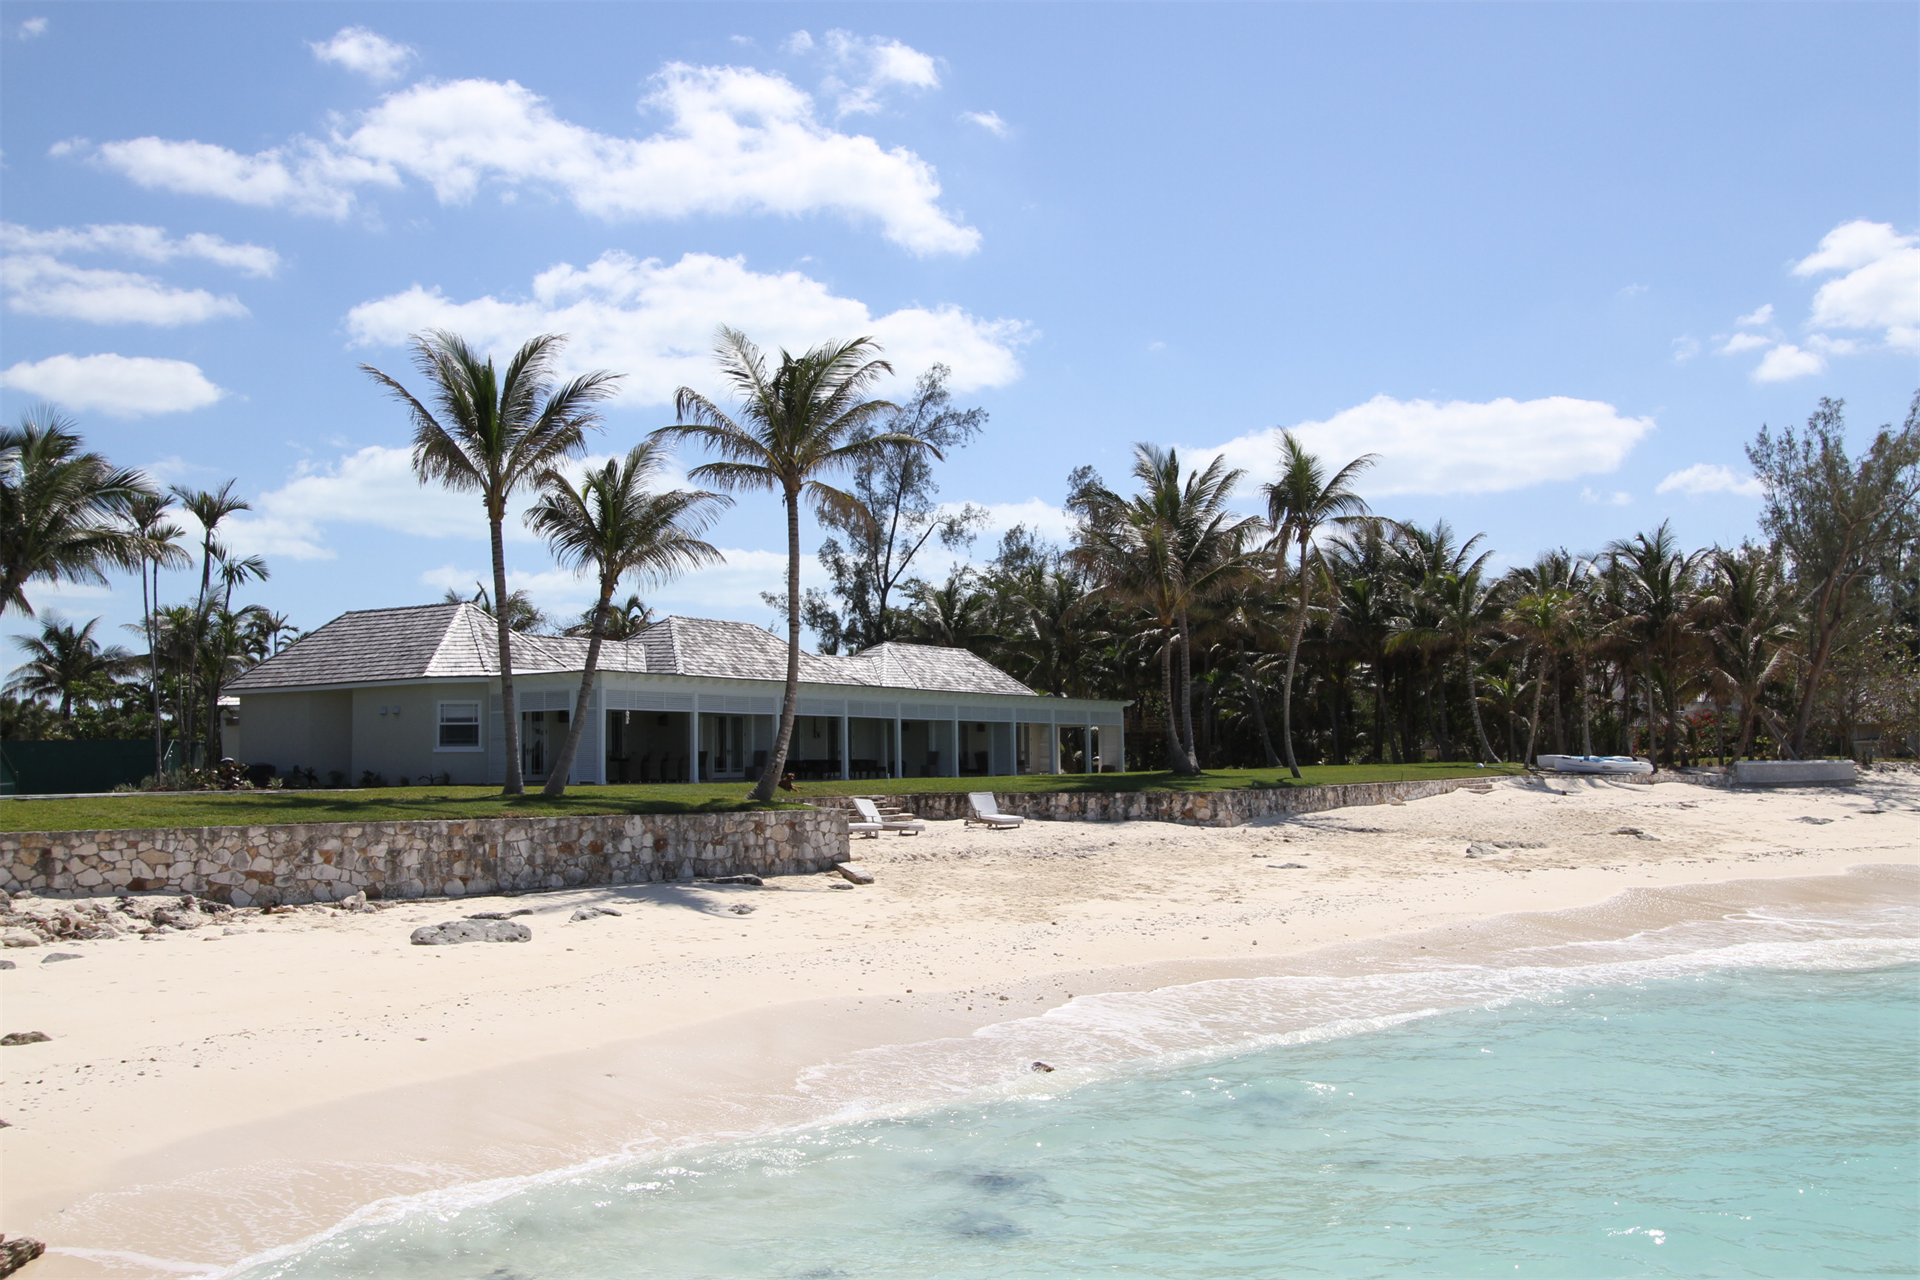 Property for Sale at Beachfront Estate In Lyford Cay, Bahamas Lyford Cay, Nassau And Paradise Island Bahamas